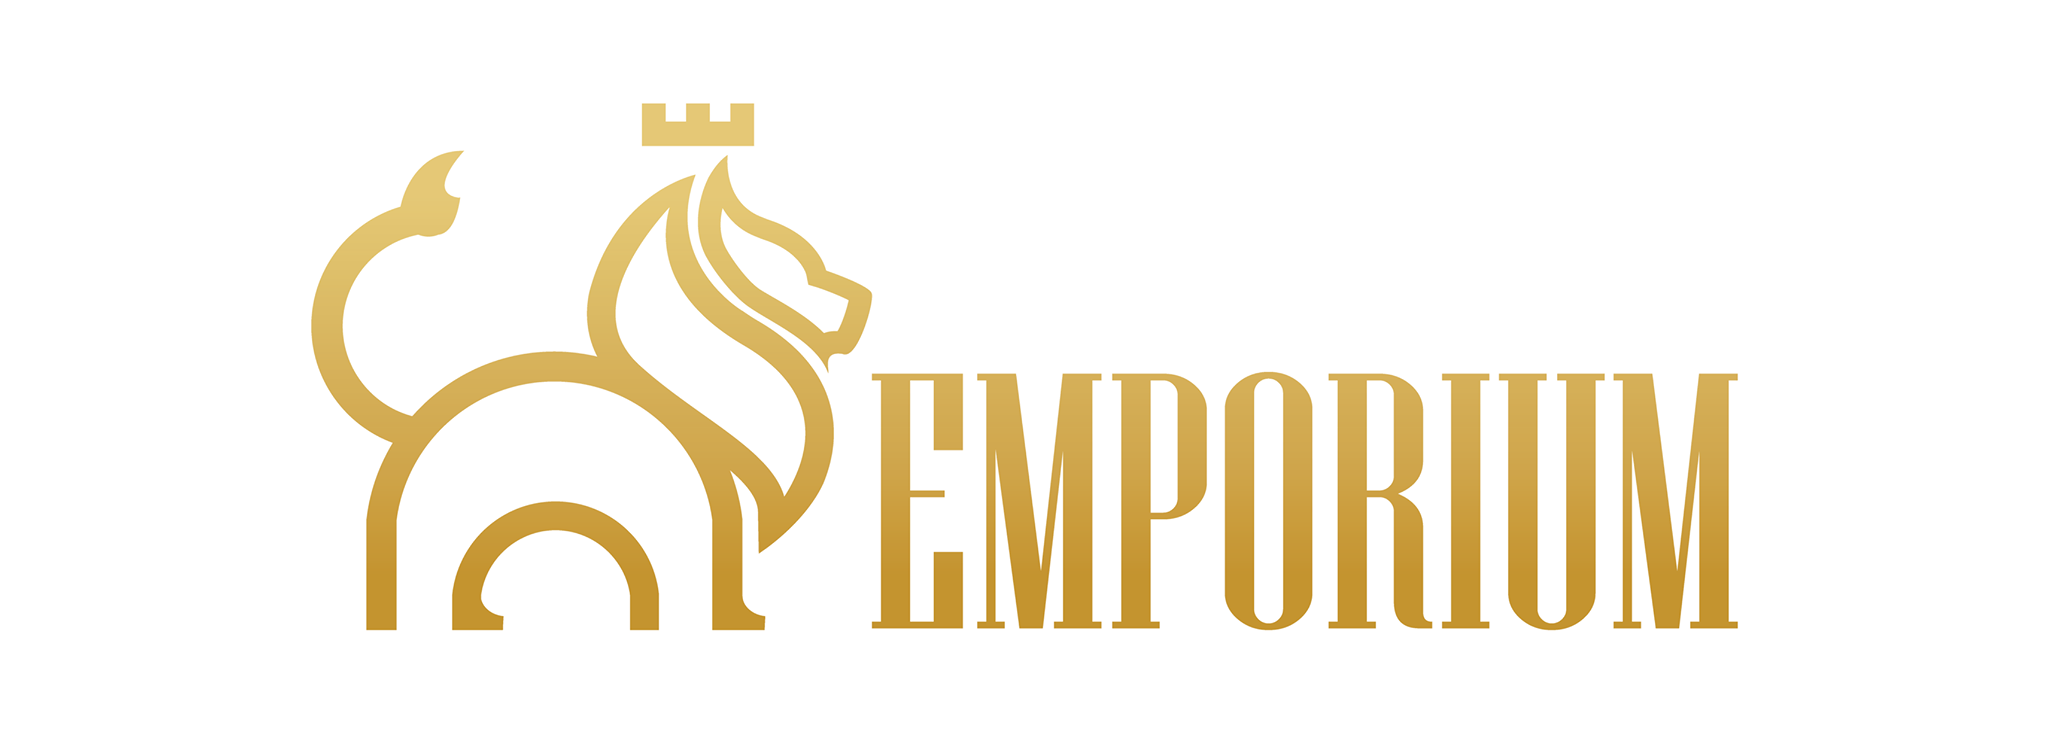 Online Stores Made Accessible with Emporium Cebu